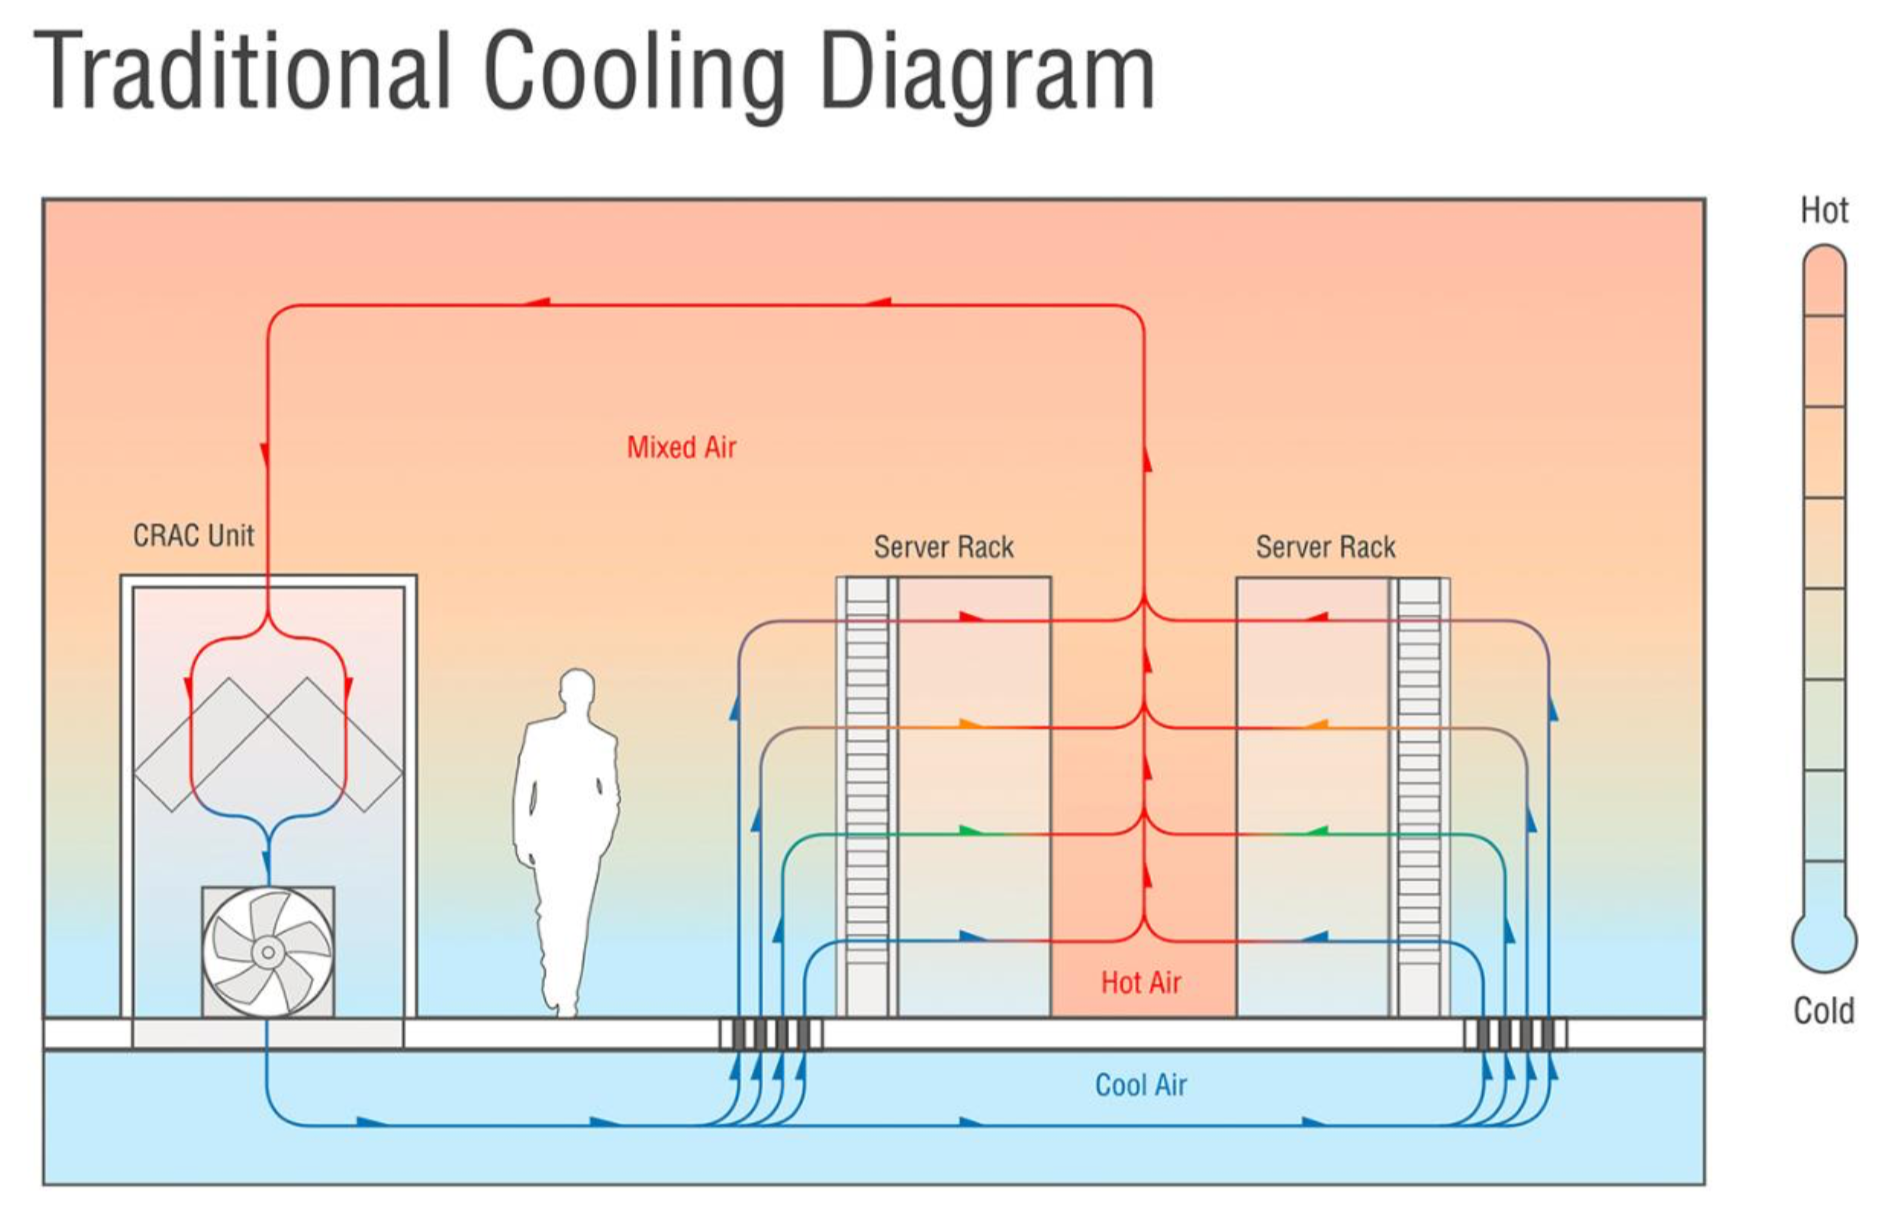 Traditional cooling diagram - data centers